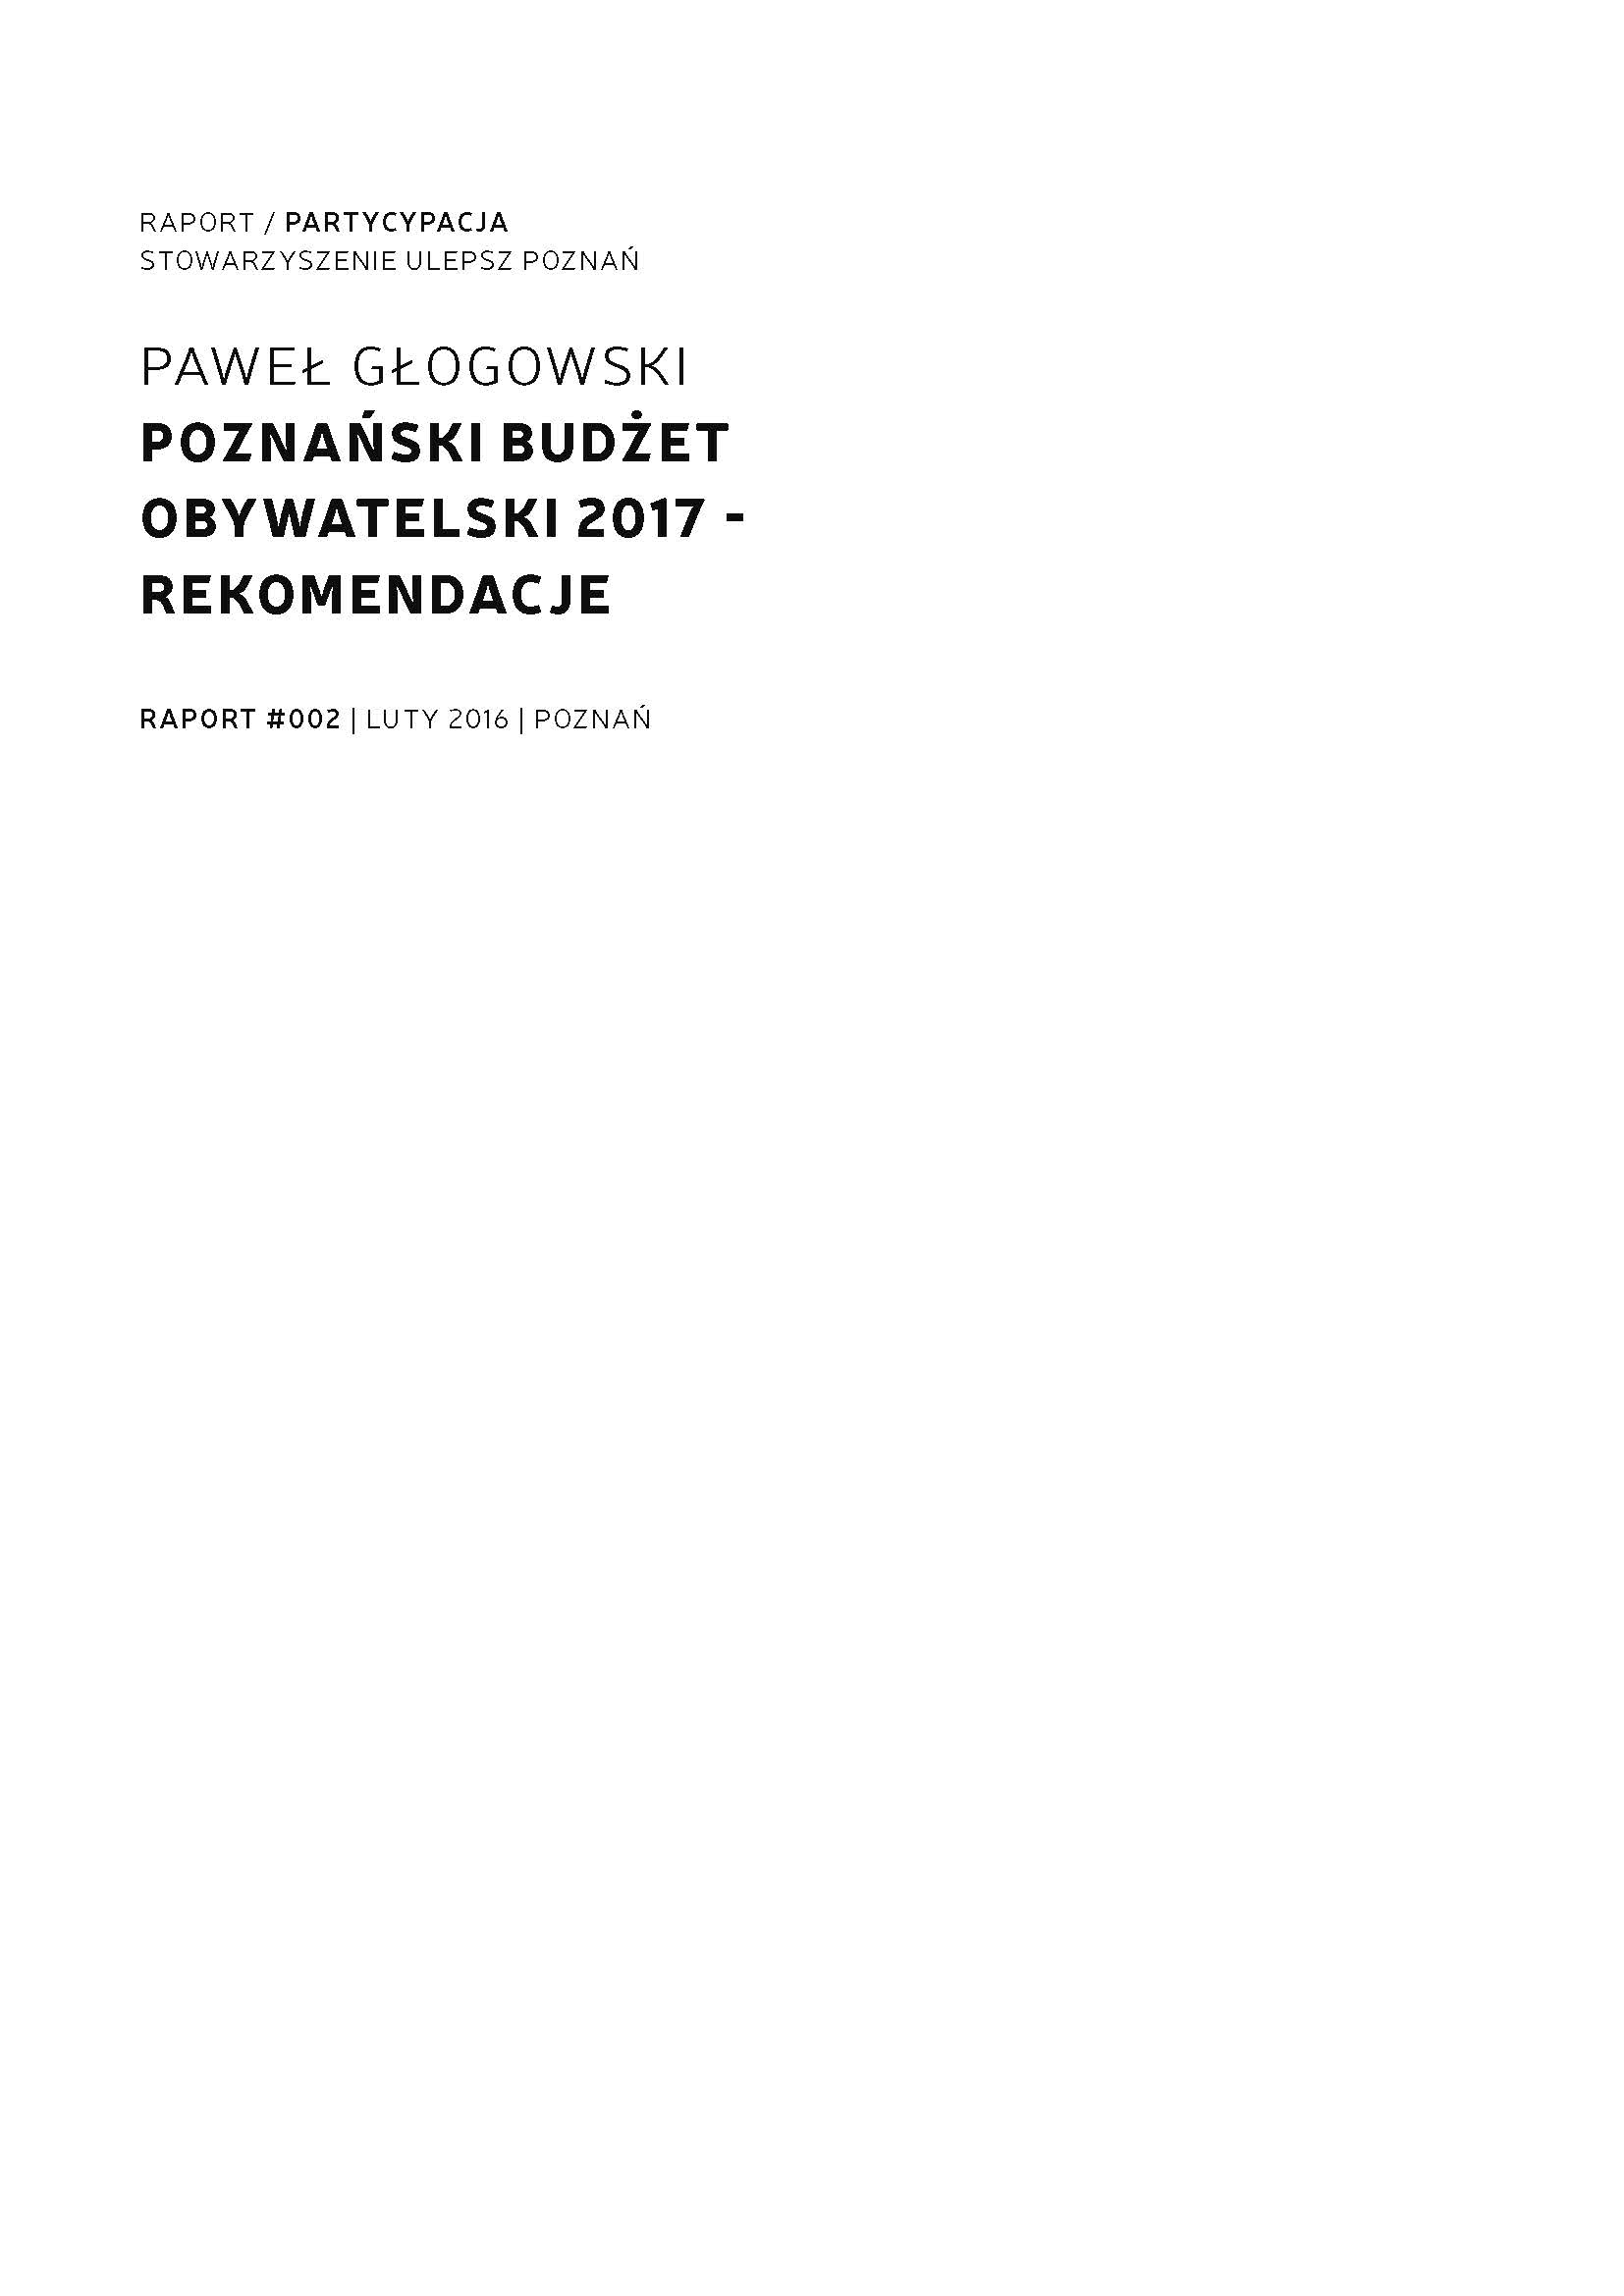 Poznan Participatory Budget 2017 - Recommendations Cover Image